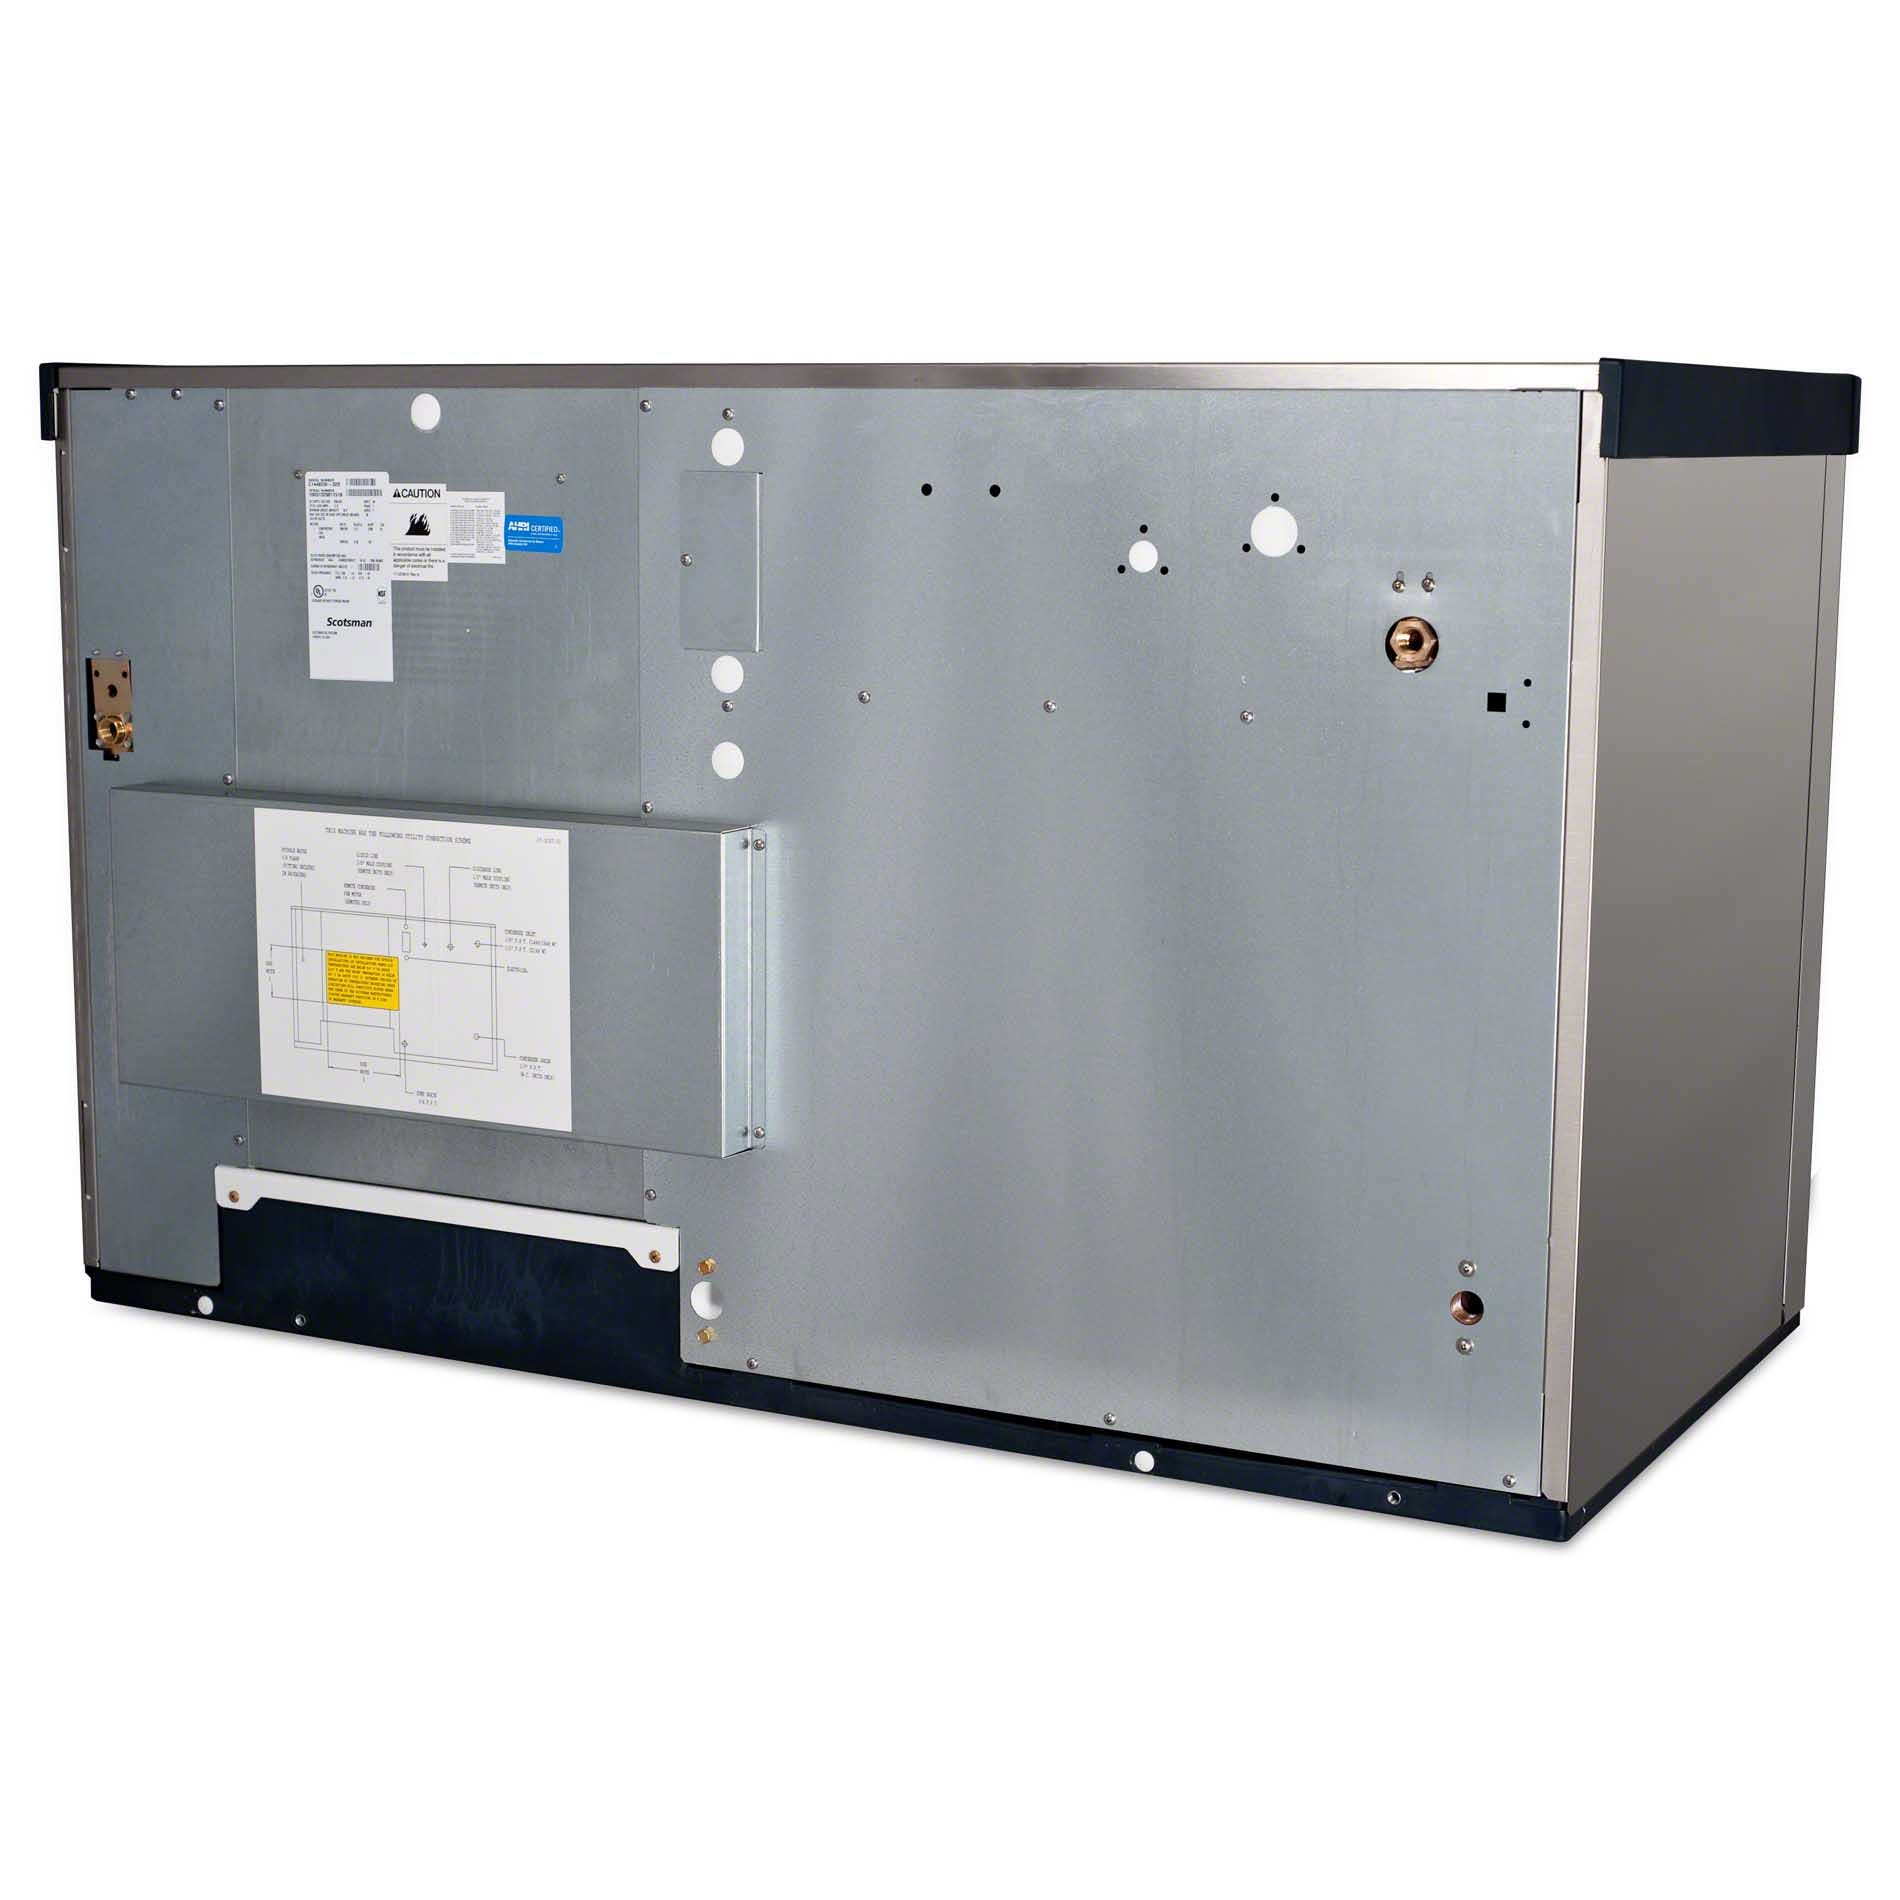 Scotsman - C2148MR-32A 2248 lb Full Size Cube Ice Machine - Prodigy Series - sold by Food Service Warehouse